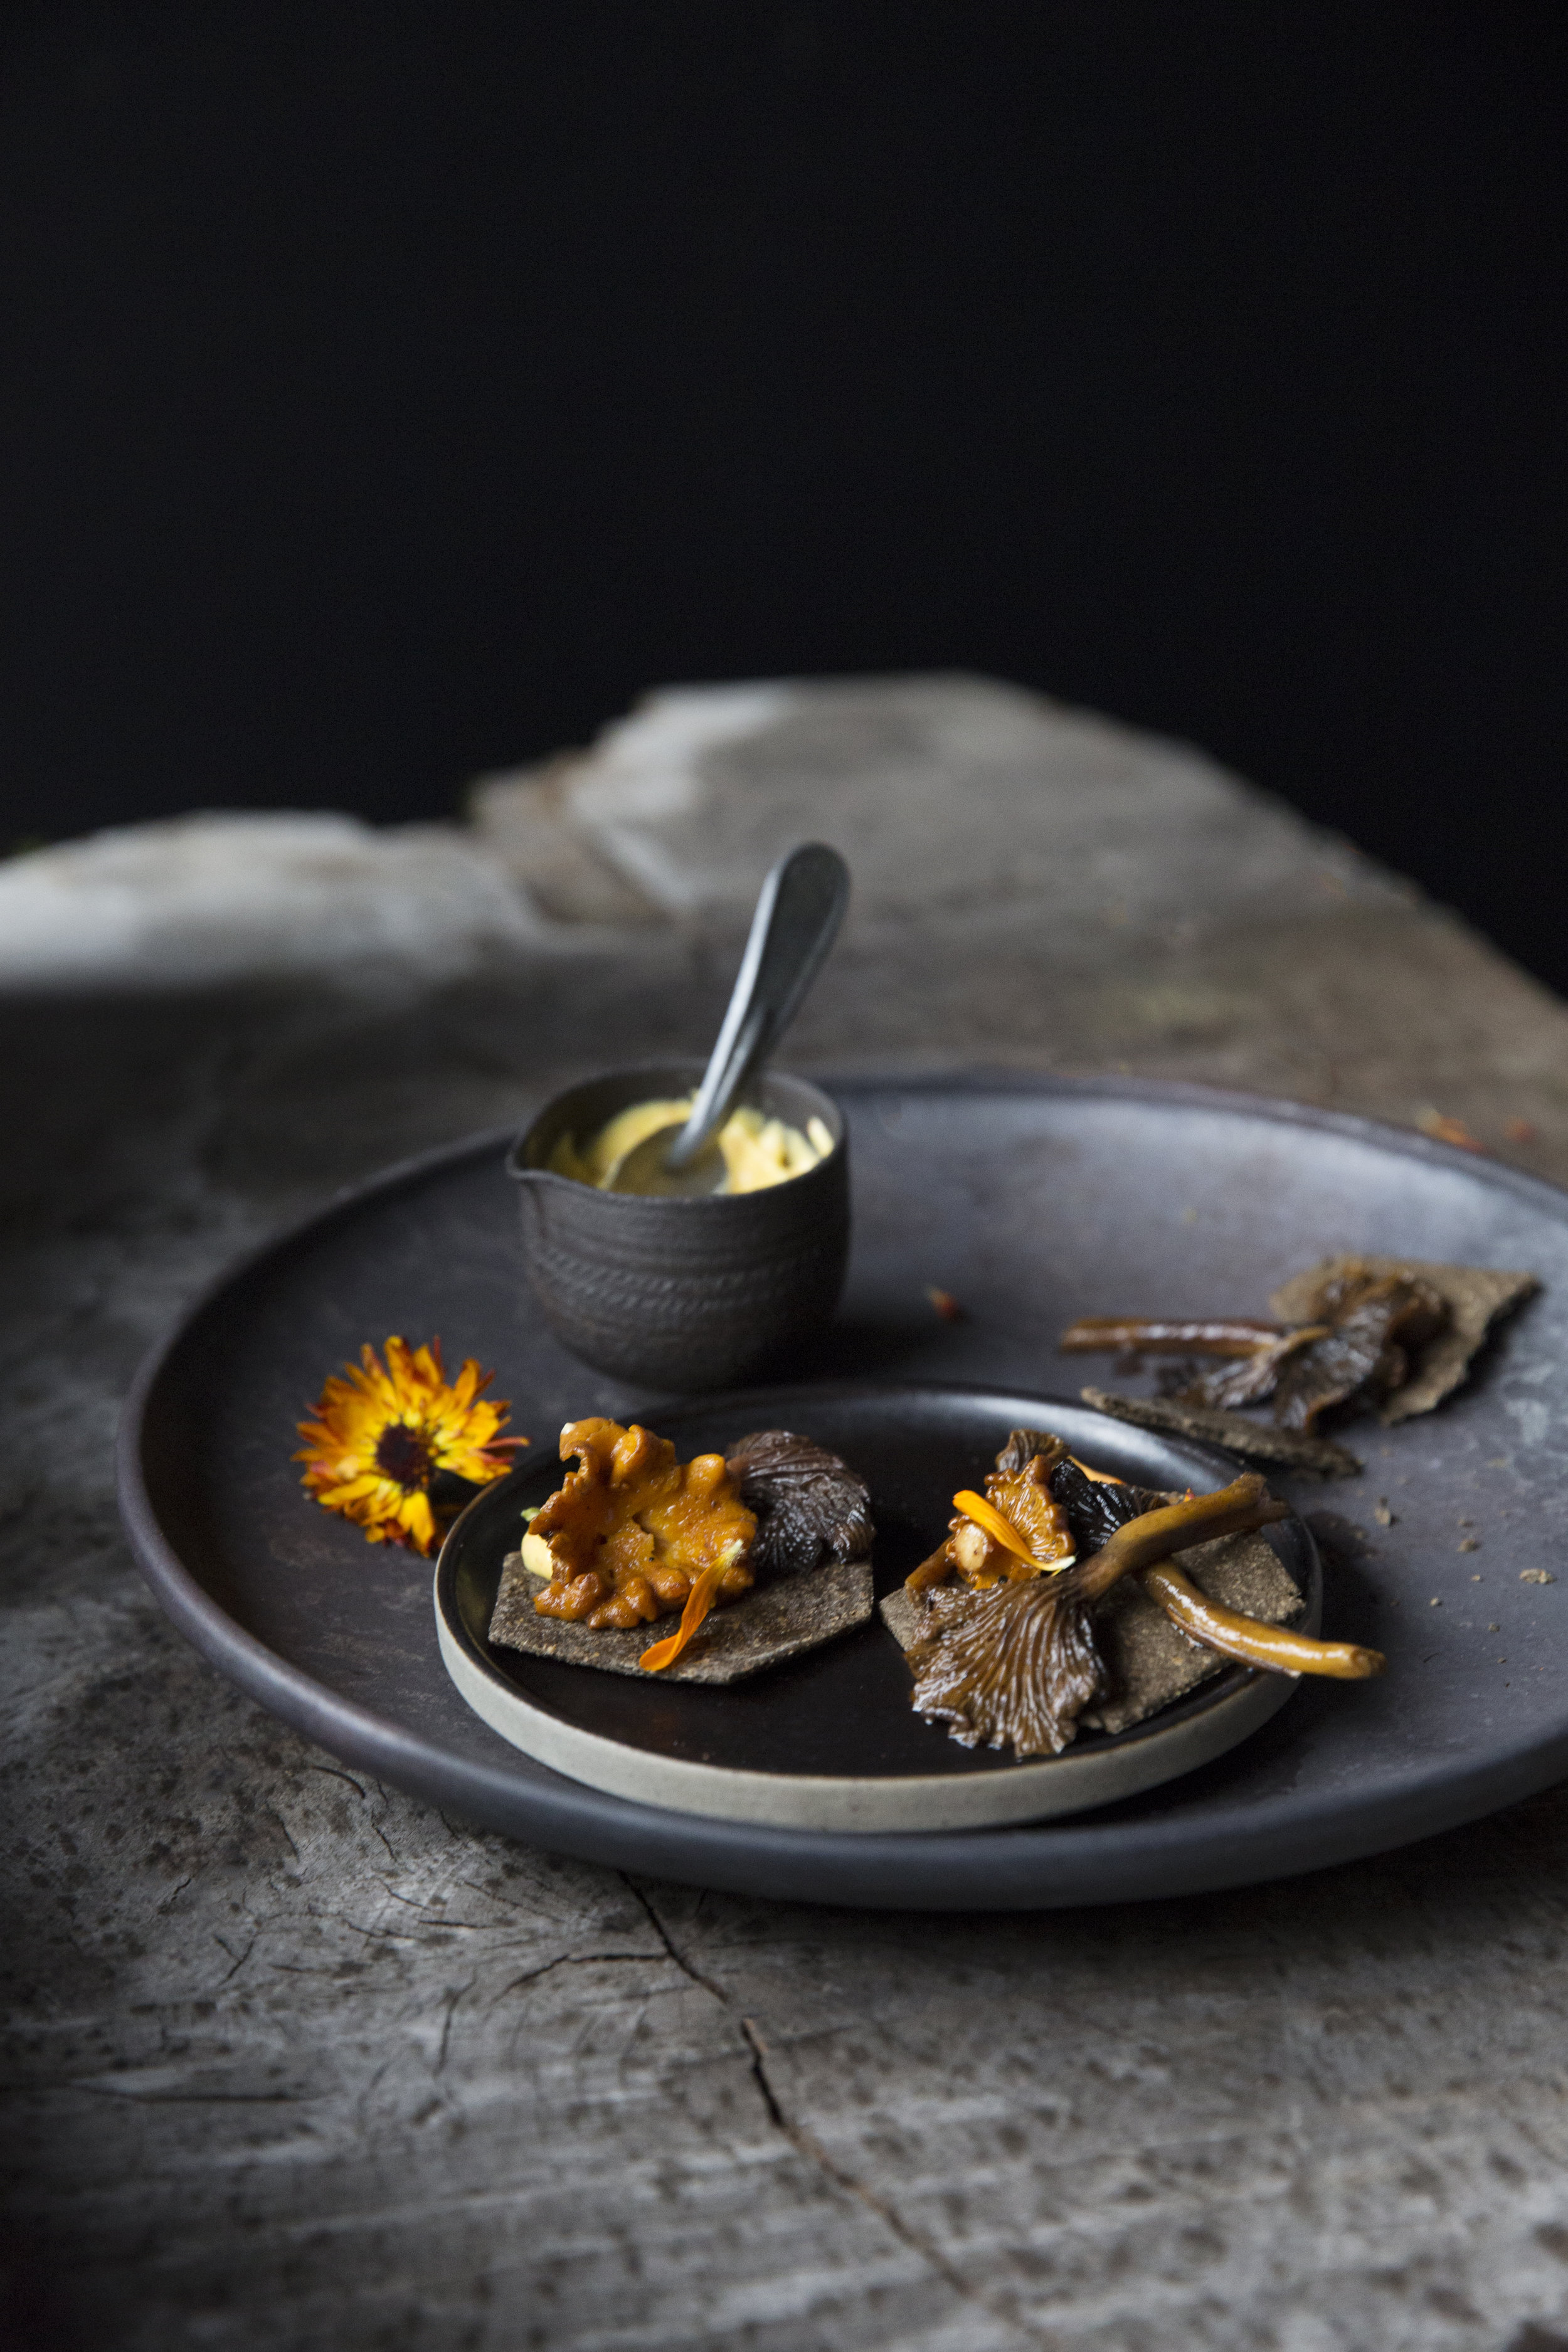 Roasted Mushroom with Marigold Sauce and Ash Crackers Toronto Food photographer